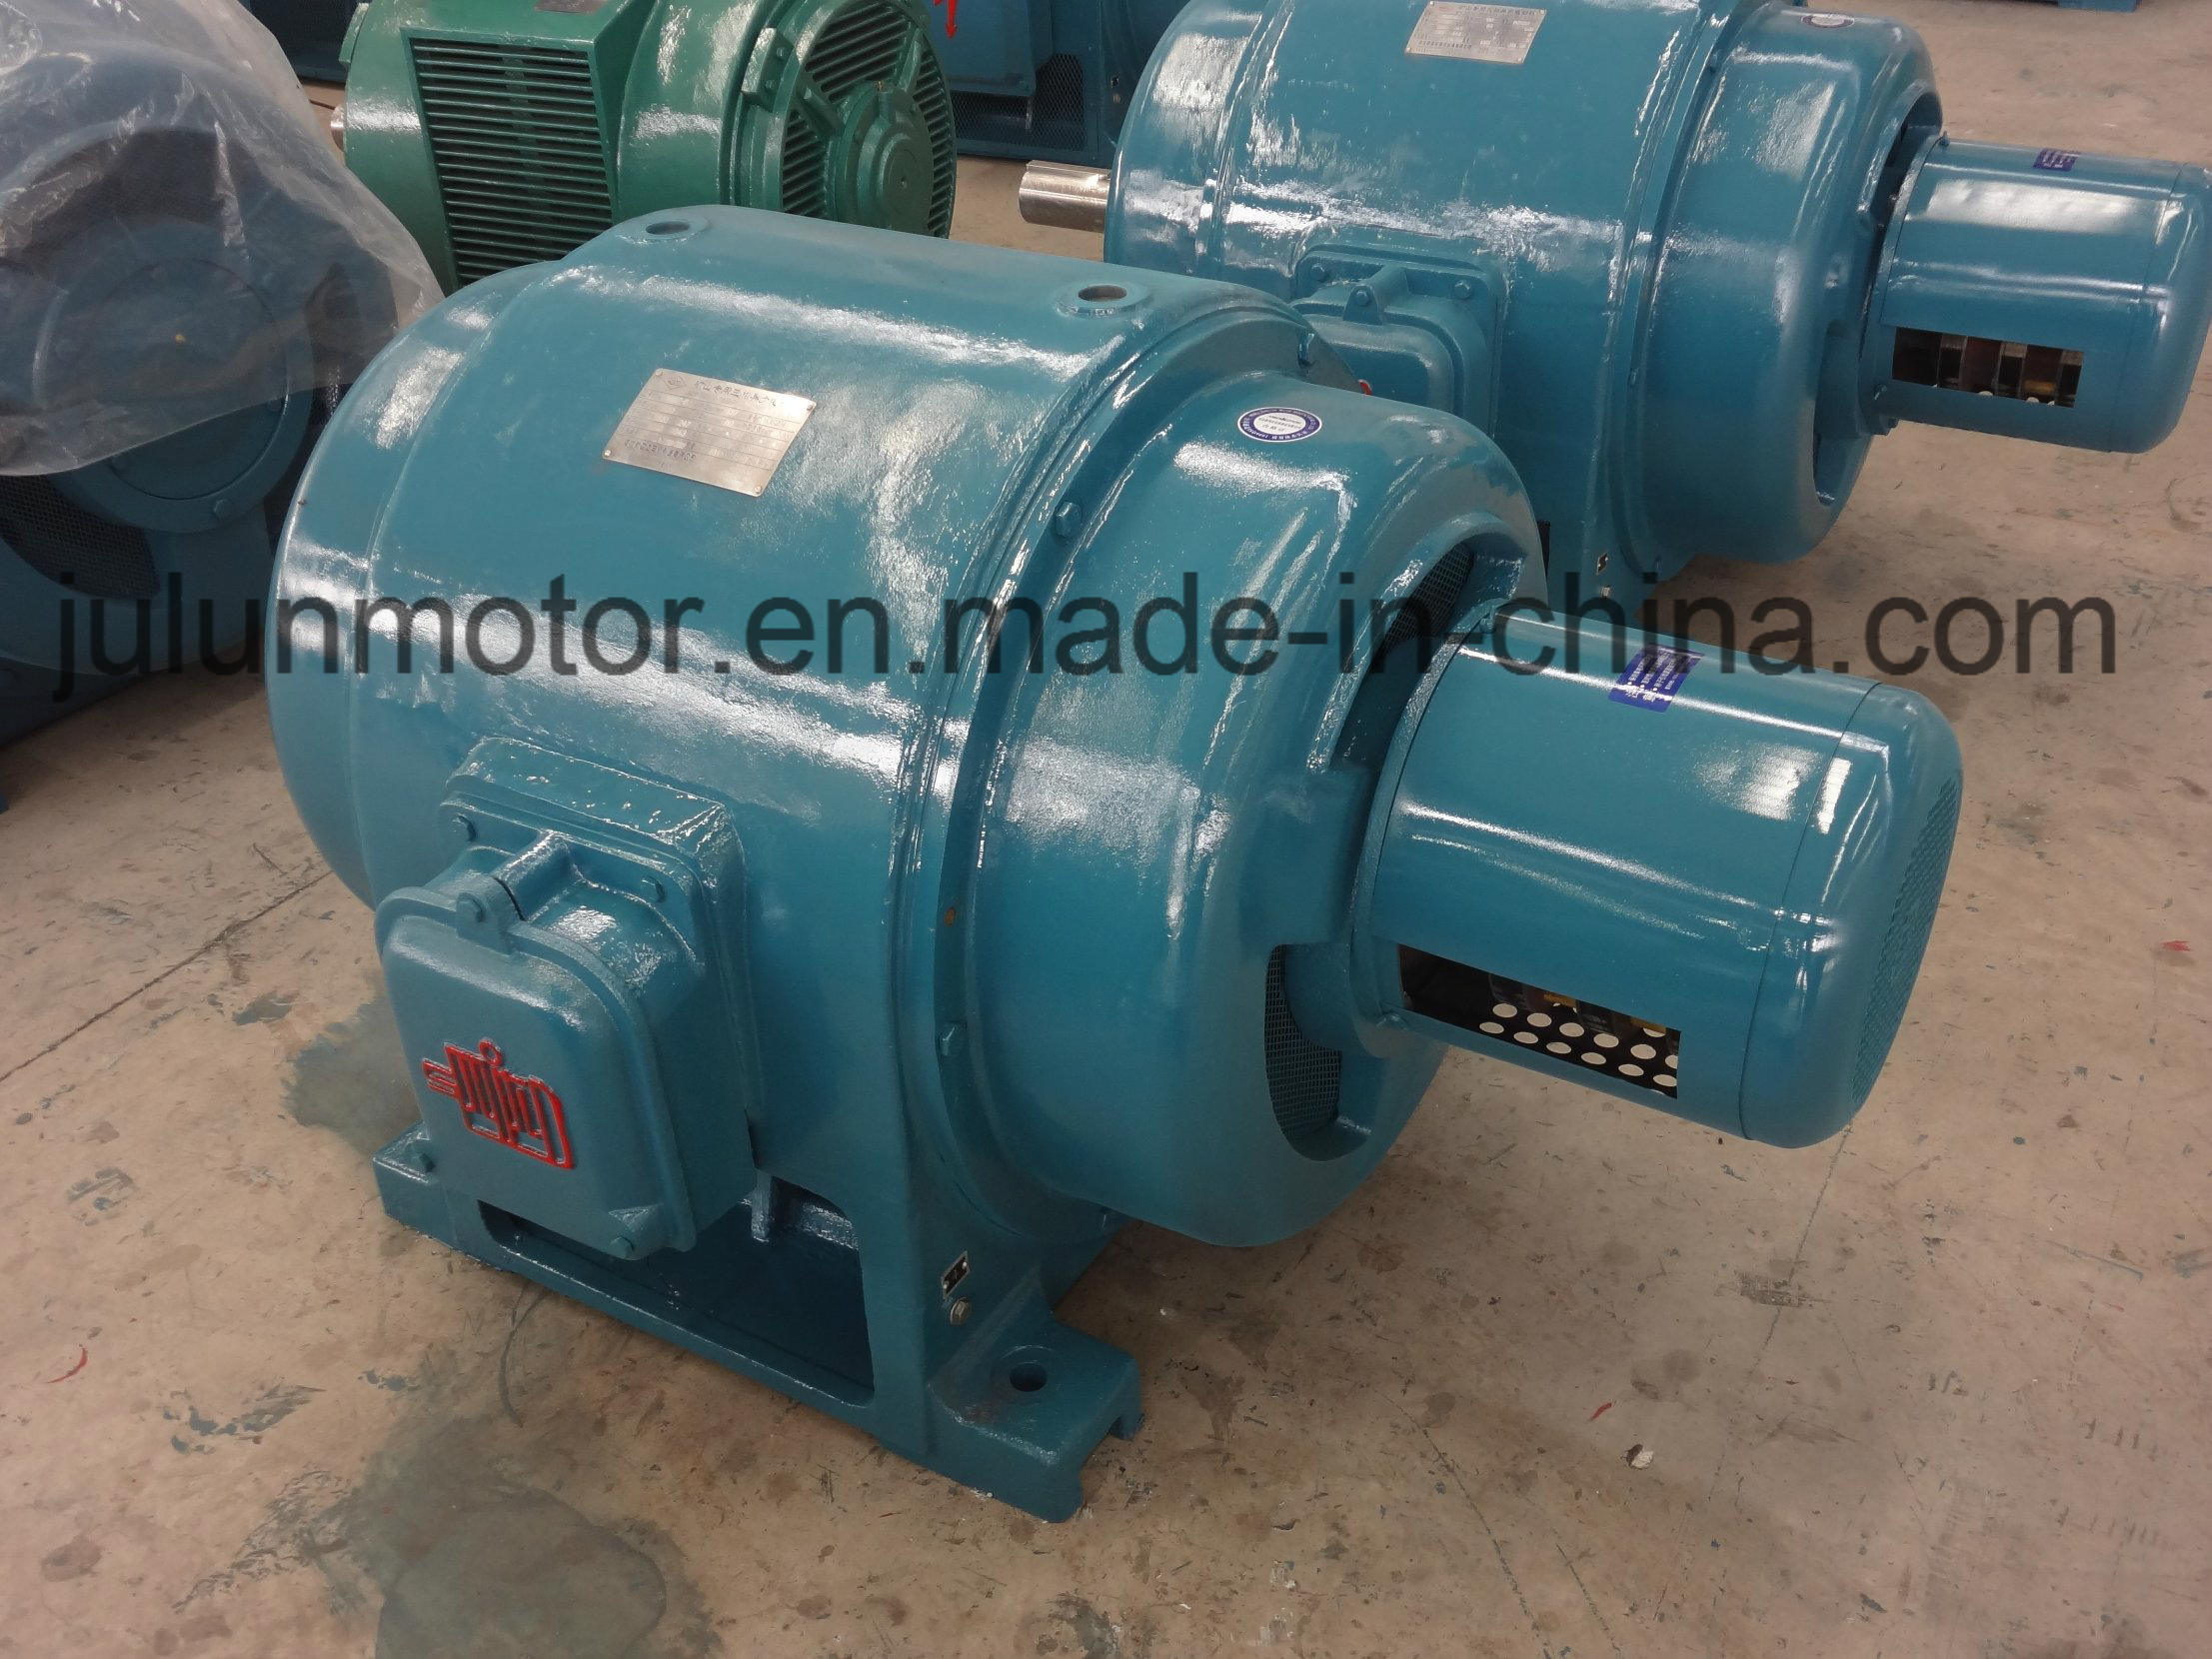 Jr Series Wound Rotor Slip Ring Motor Ball Mill Motor Jr136-6-240kw